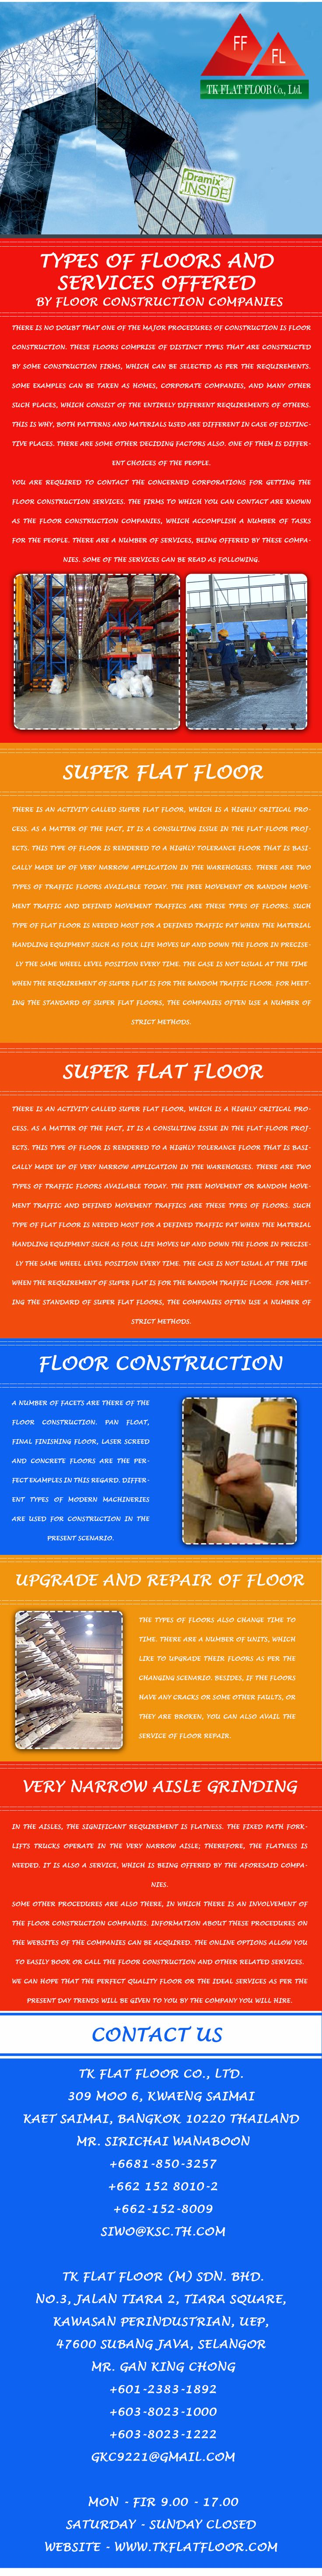 Super Flat floor is rendered to a highly tolerance floor that is basically made up of very narrow application in the warehouses. Great care and consideration is given to optimize the local materials to obtain the best possible concrete mix design with emphasis on finishability and durability.